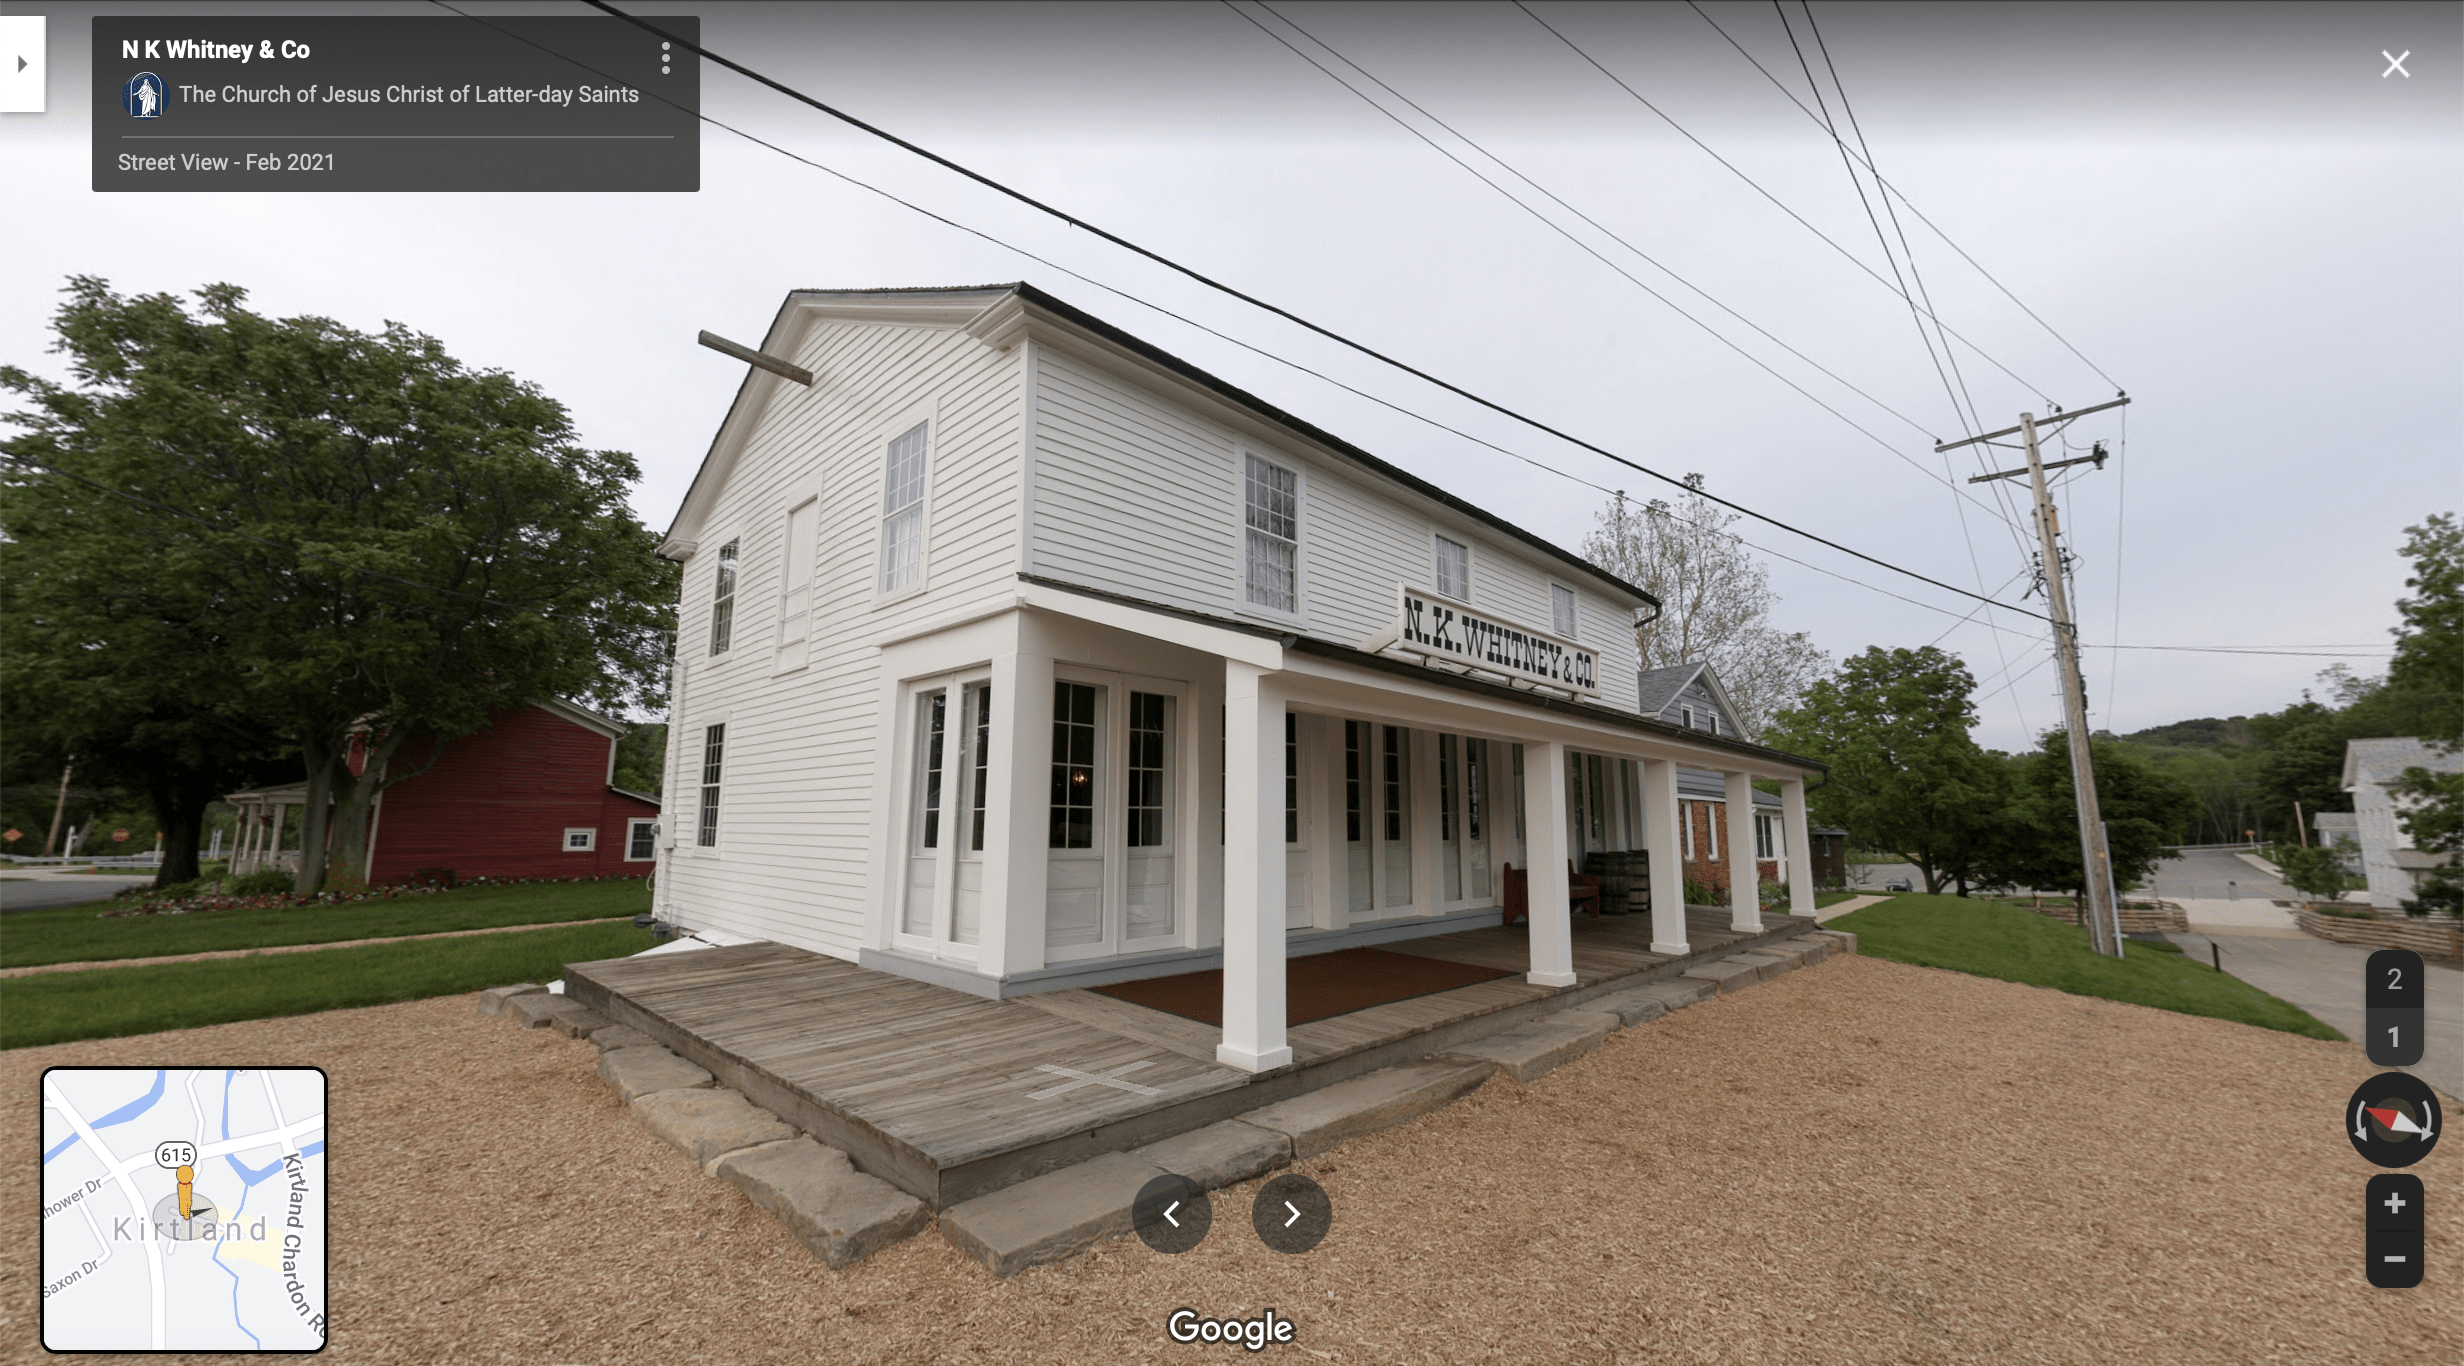 Screenshot of the Google Maps 360 view of the Newell K. Whitney Store